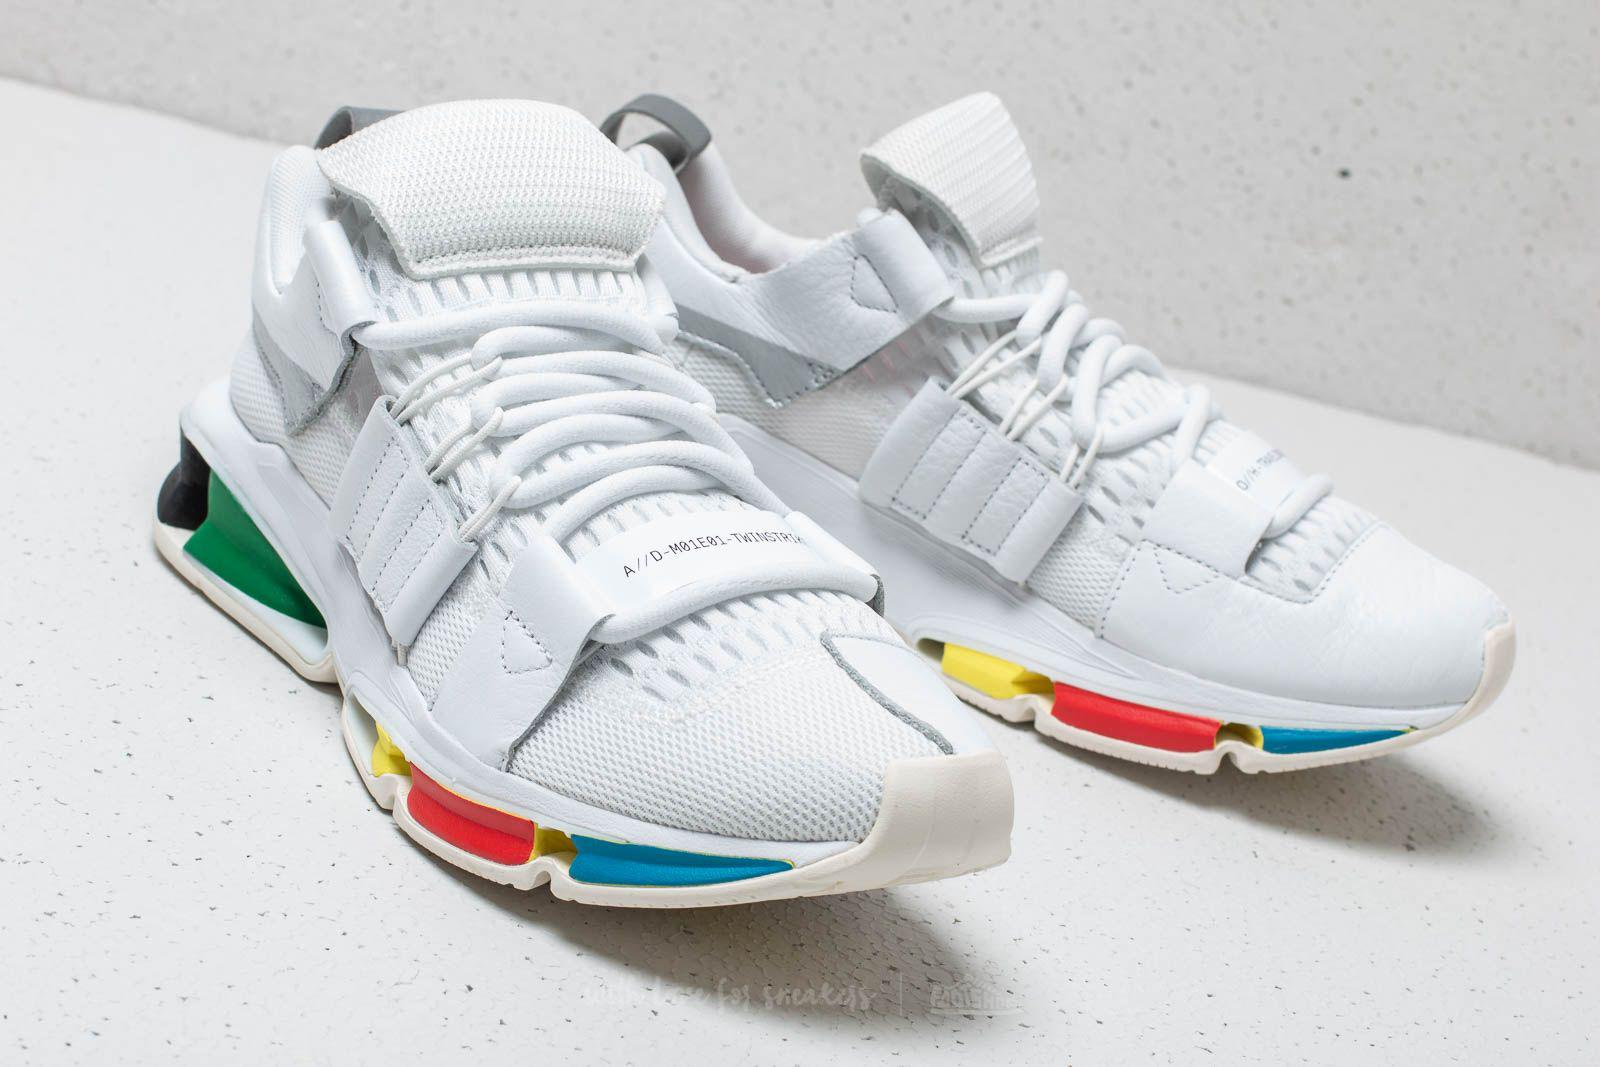 info for 9cdfd 1c8a2 Lyst - adidas Originals Adidas Statement X Oyster Holdings .